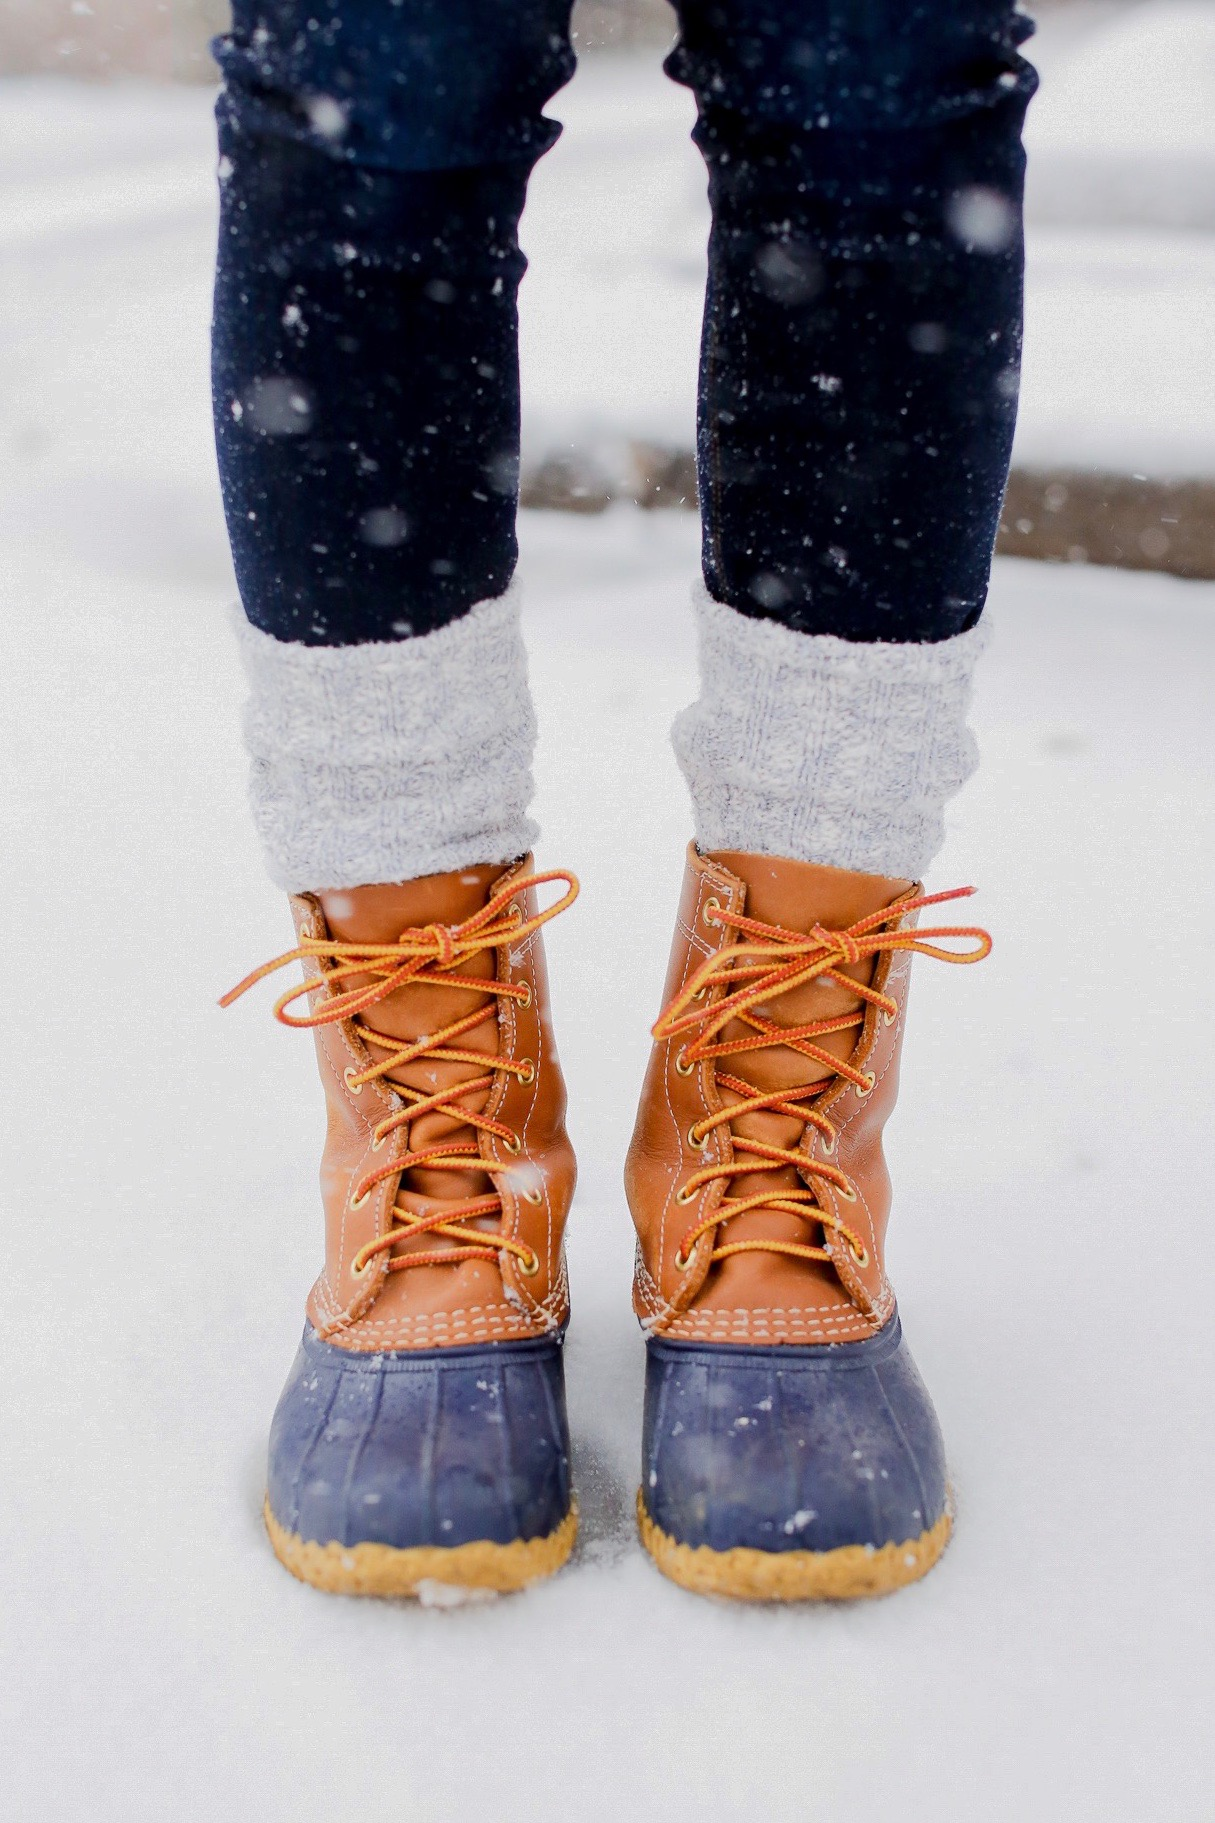 Secret L.L.Bean Sale + Bean Boot Giveaway